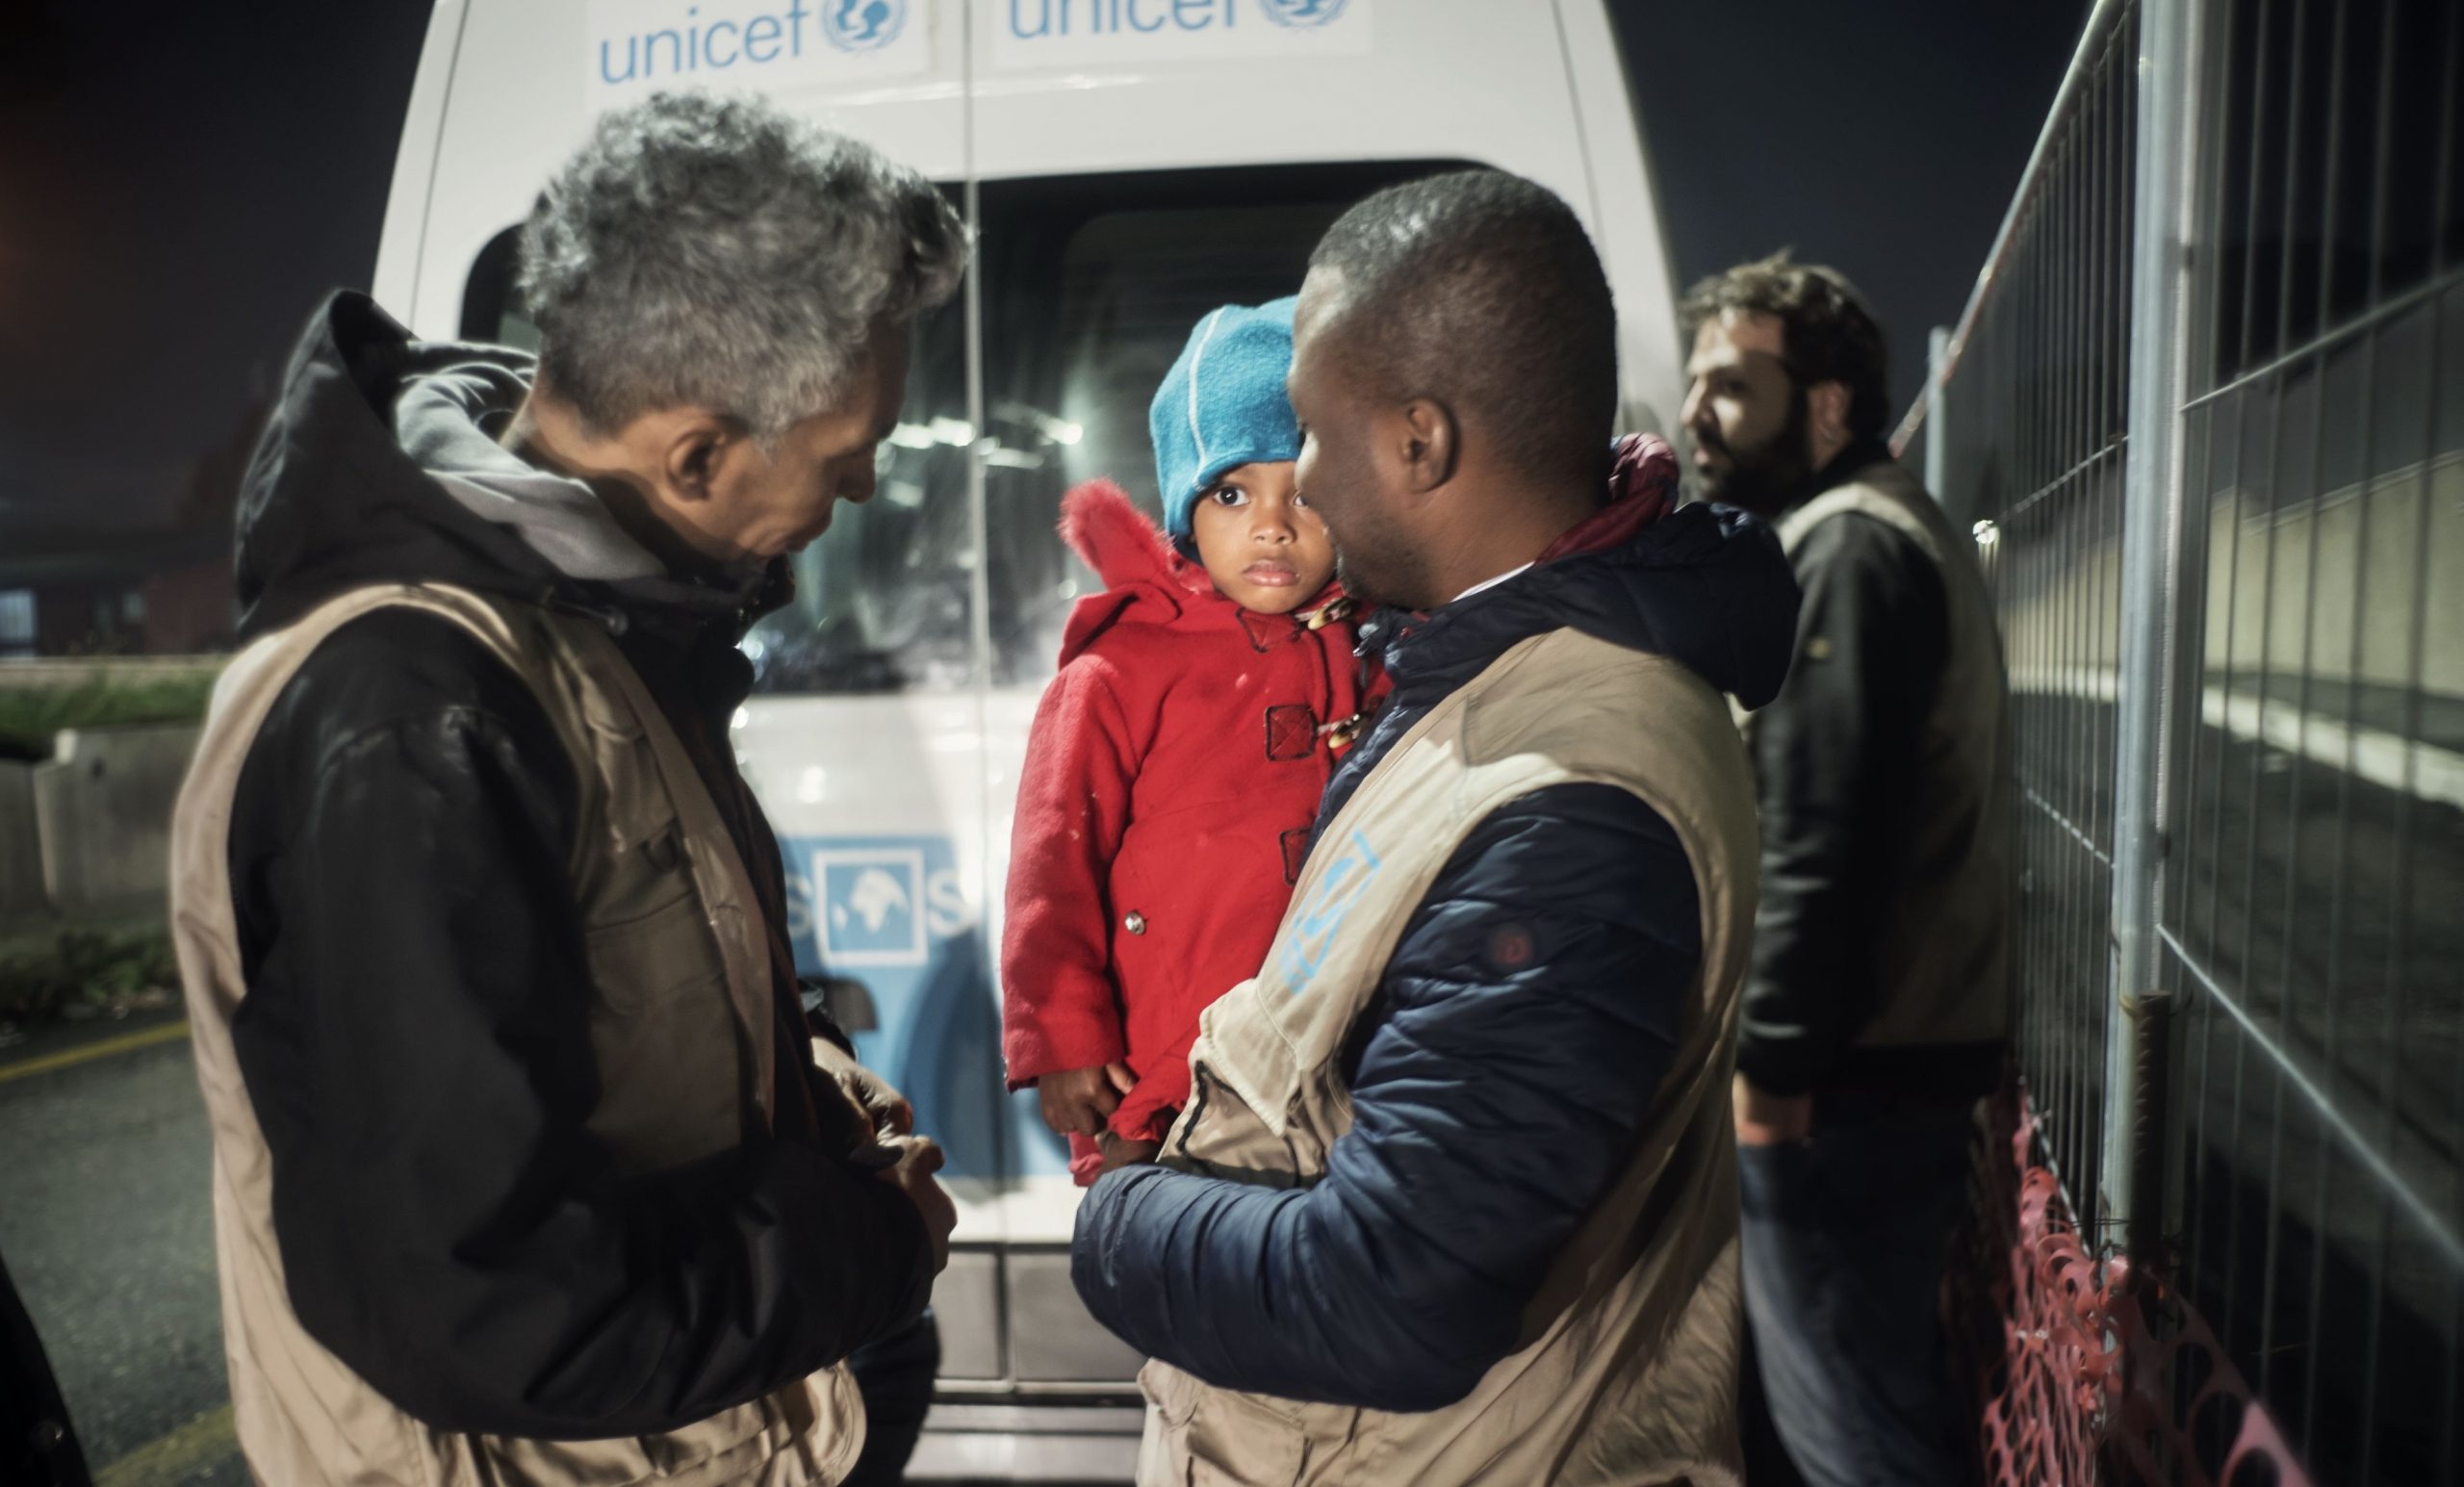 A man hollds a small child in front of a UNICEF van